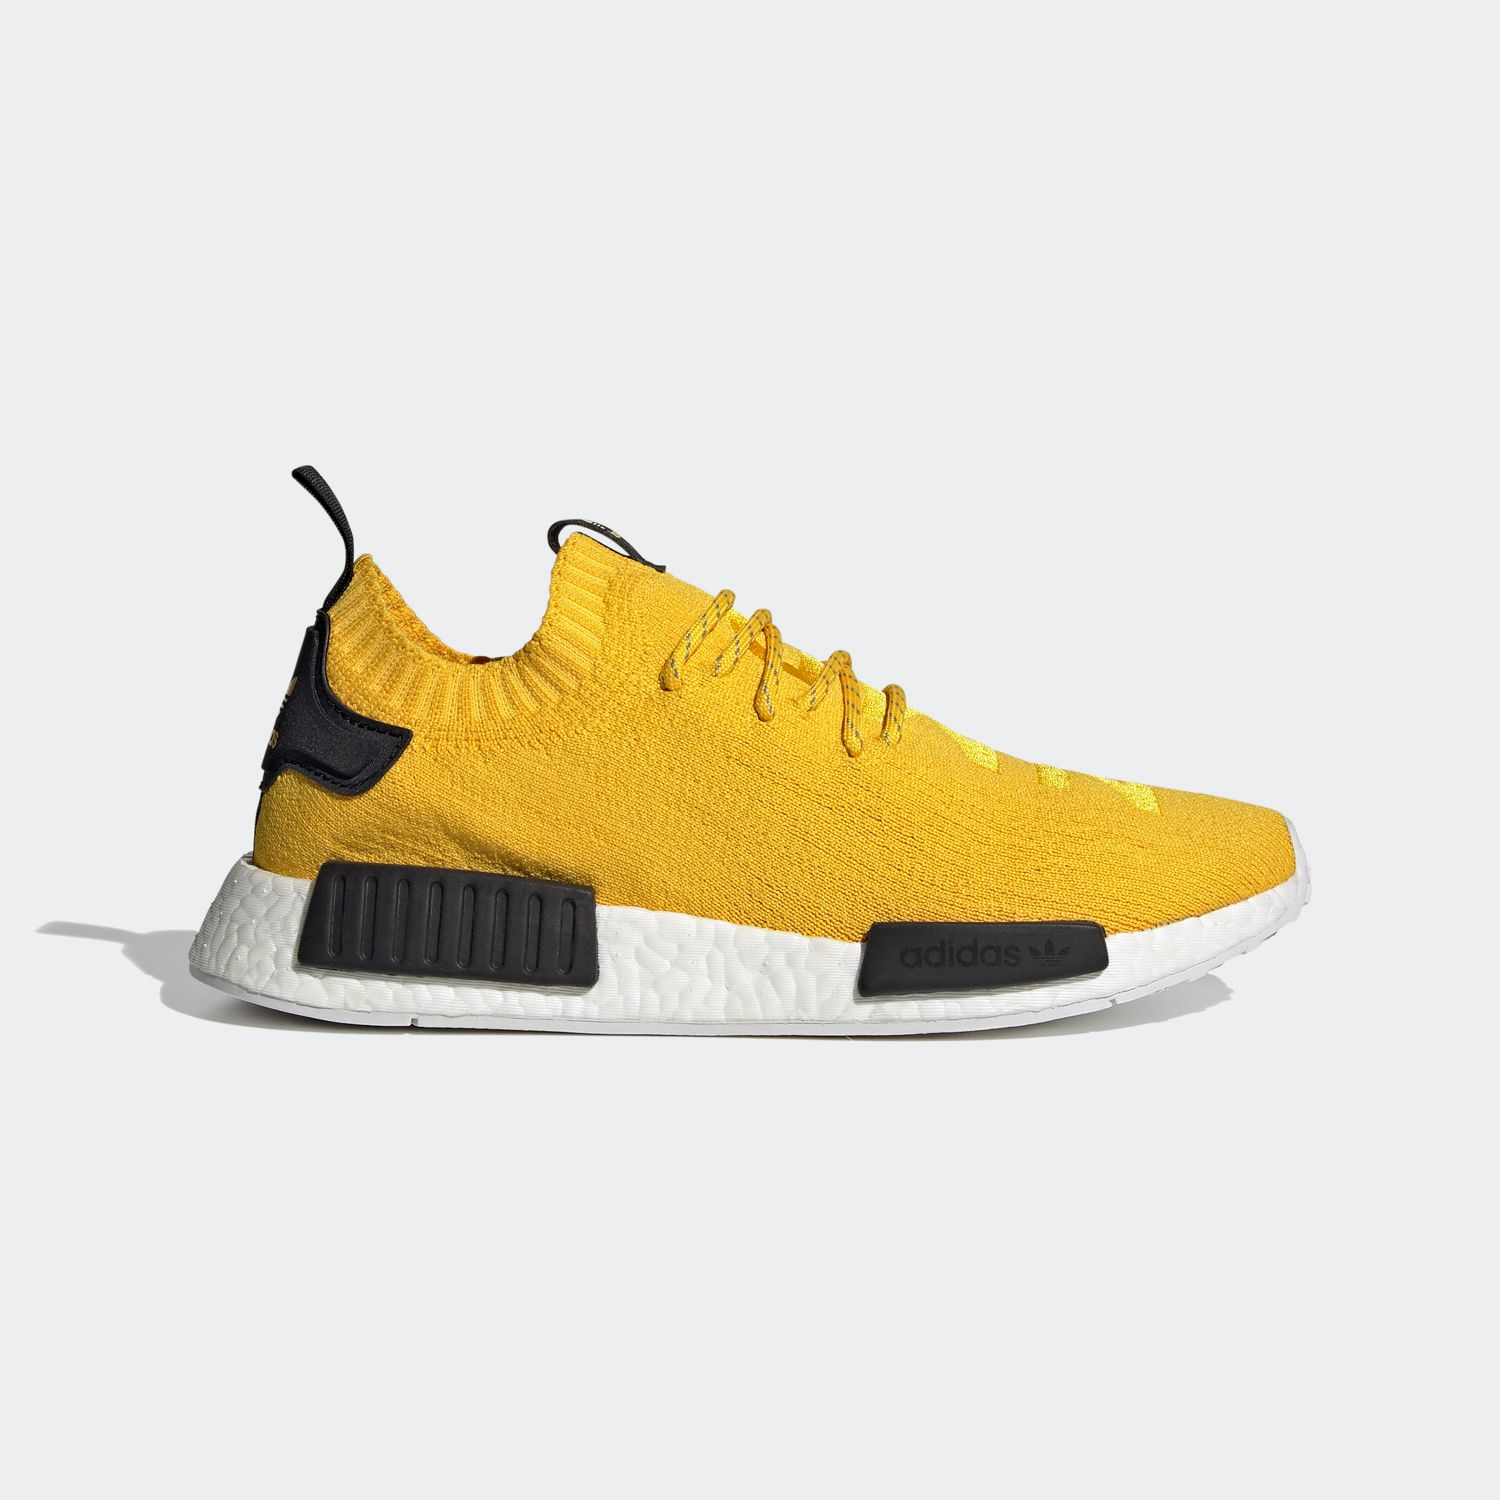 NMD_R1 Primeknit Ecutty Yellow [1]